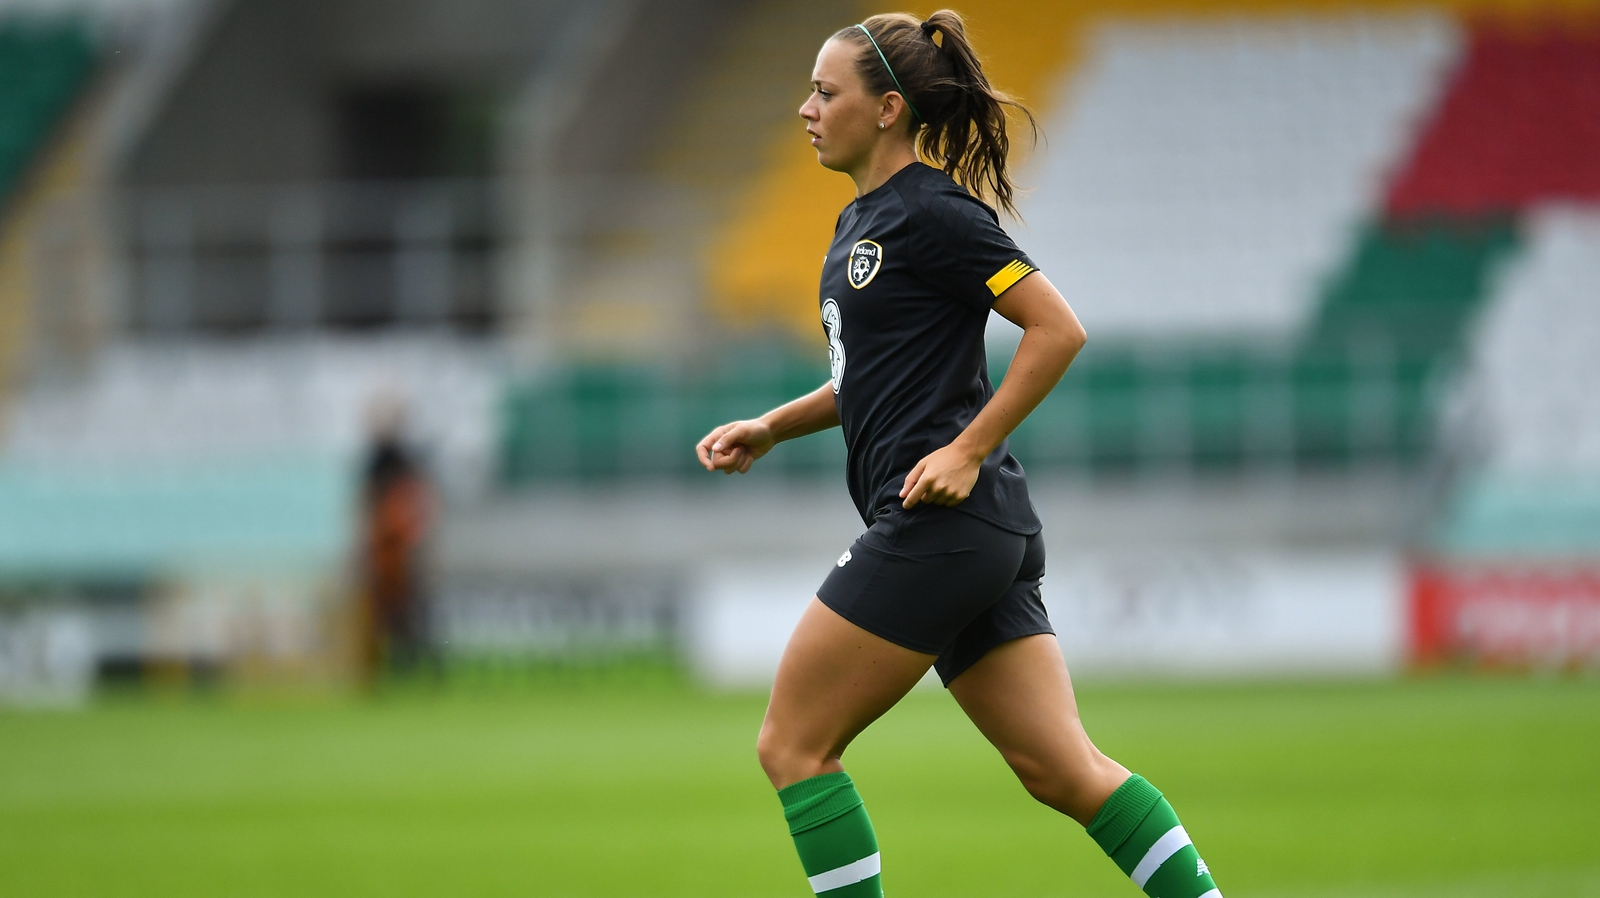 McCabe aiming for first place ahead of Montenegro clash